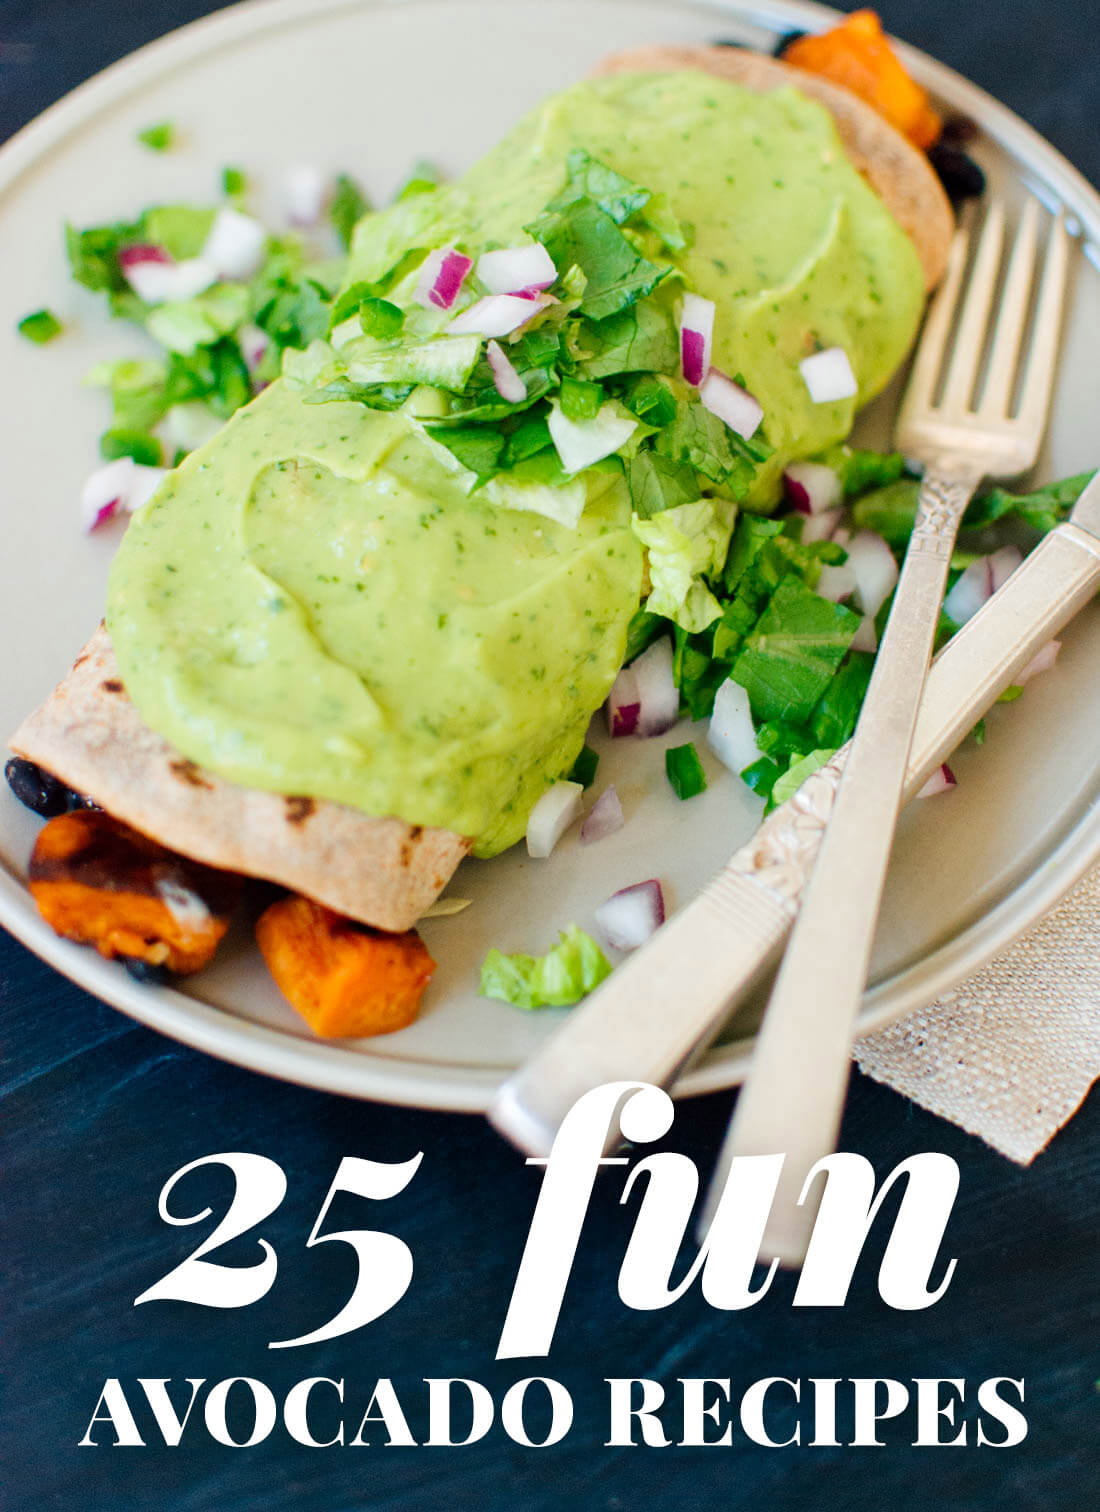 Browse 25 fresh avocado recipes! From easy avocado appetizers (guacamole!) to avocado-topped burritos, find many delicious ways to use up that avocado. All vegetarian; many gluten free and/or vegan. cookieandkate.com